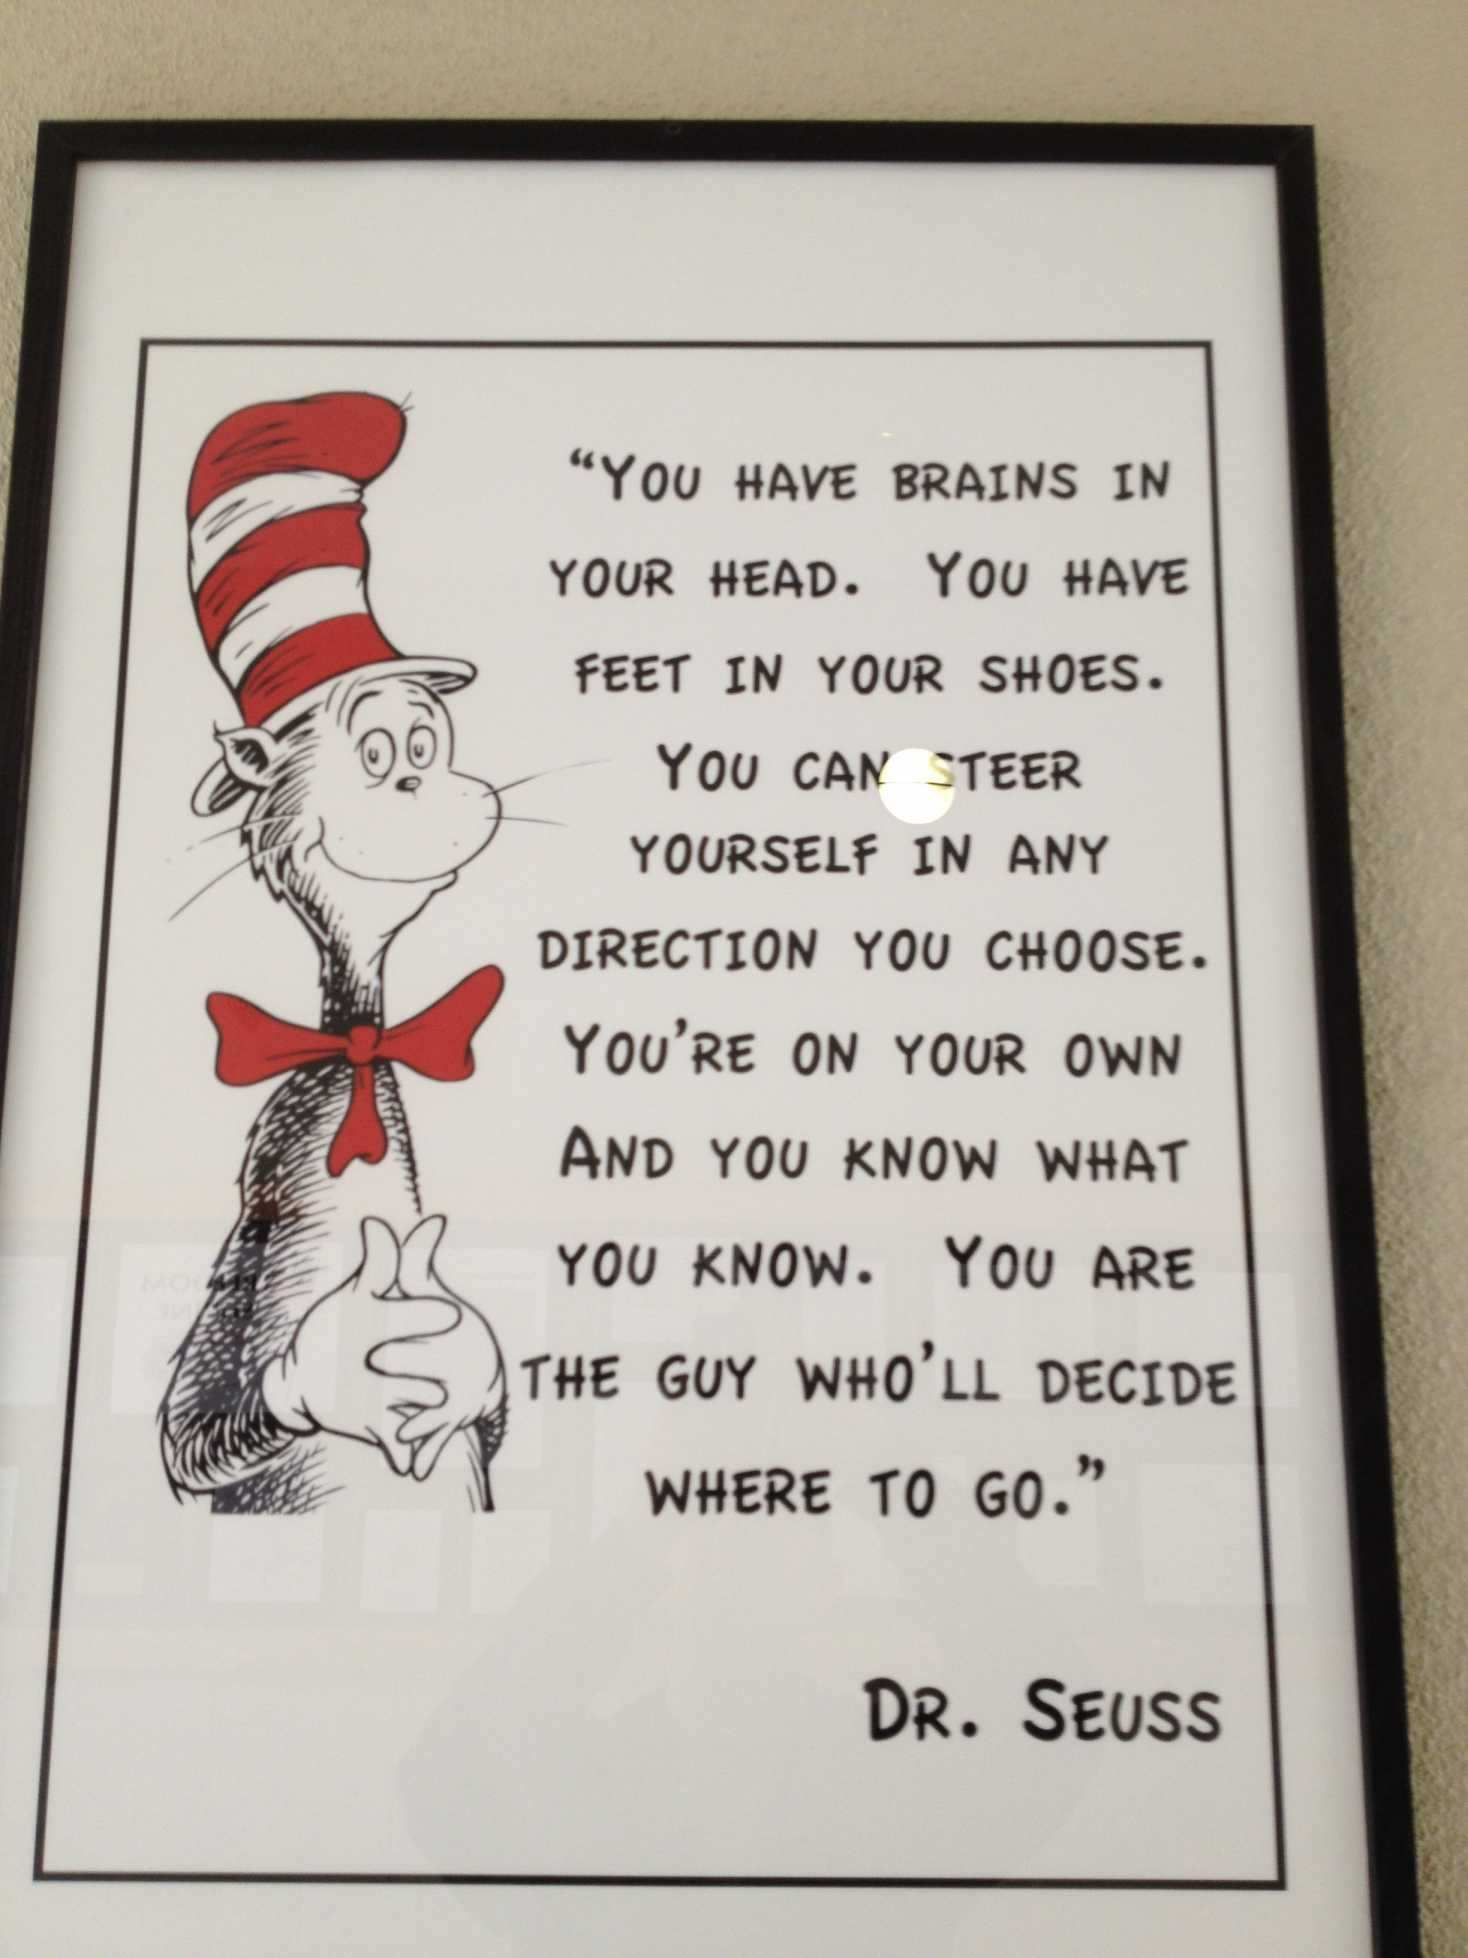 Dr Seuss Inspiring Quotes Dr Seuss Quotes About Family Quotes